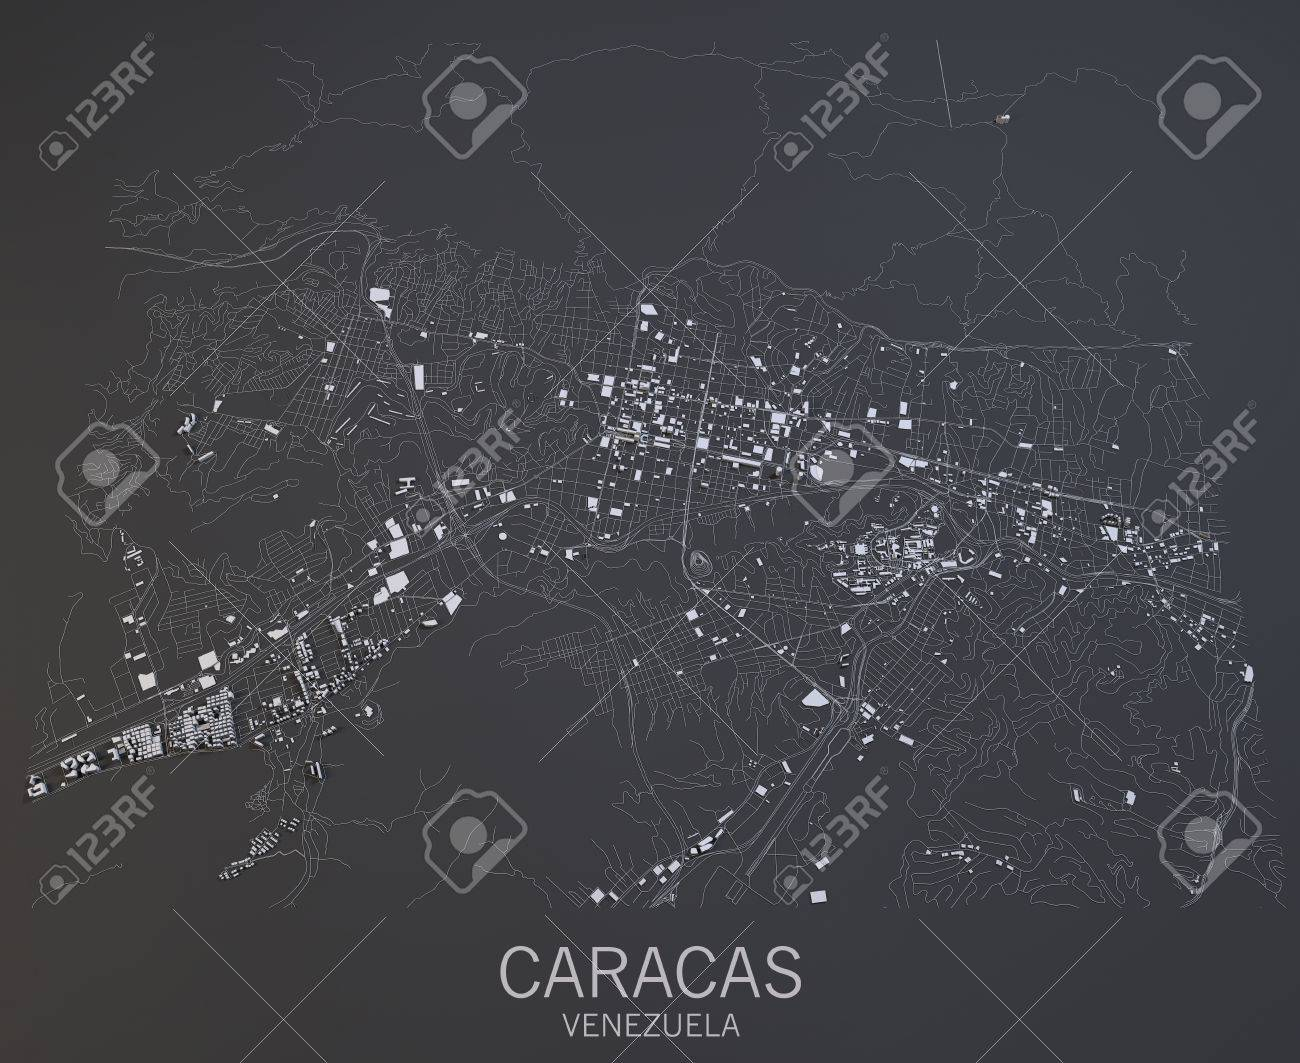 Caracas Map Satellite View Venezuela Central America Stock Photo